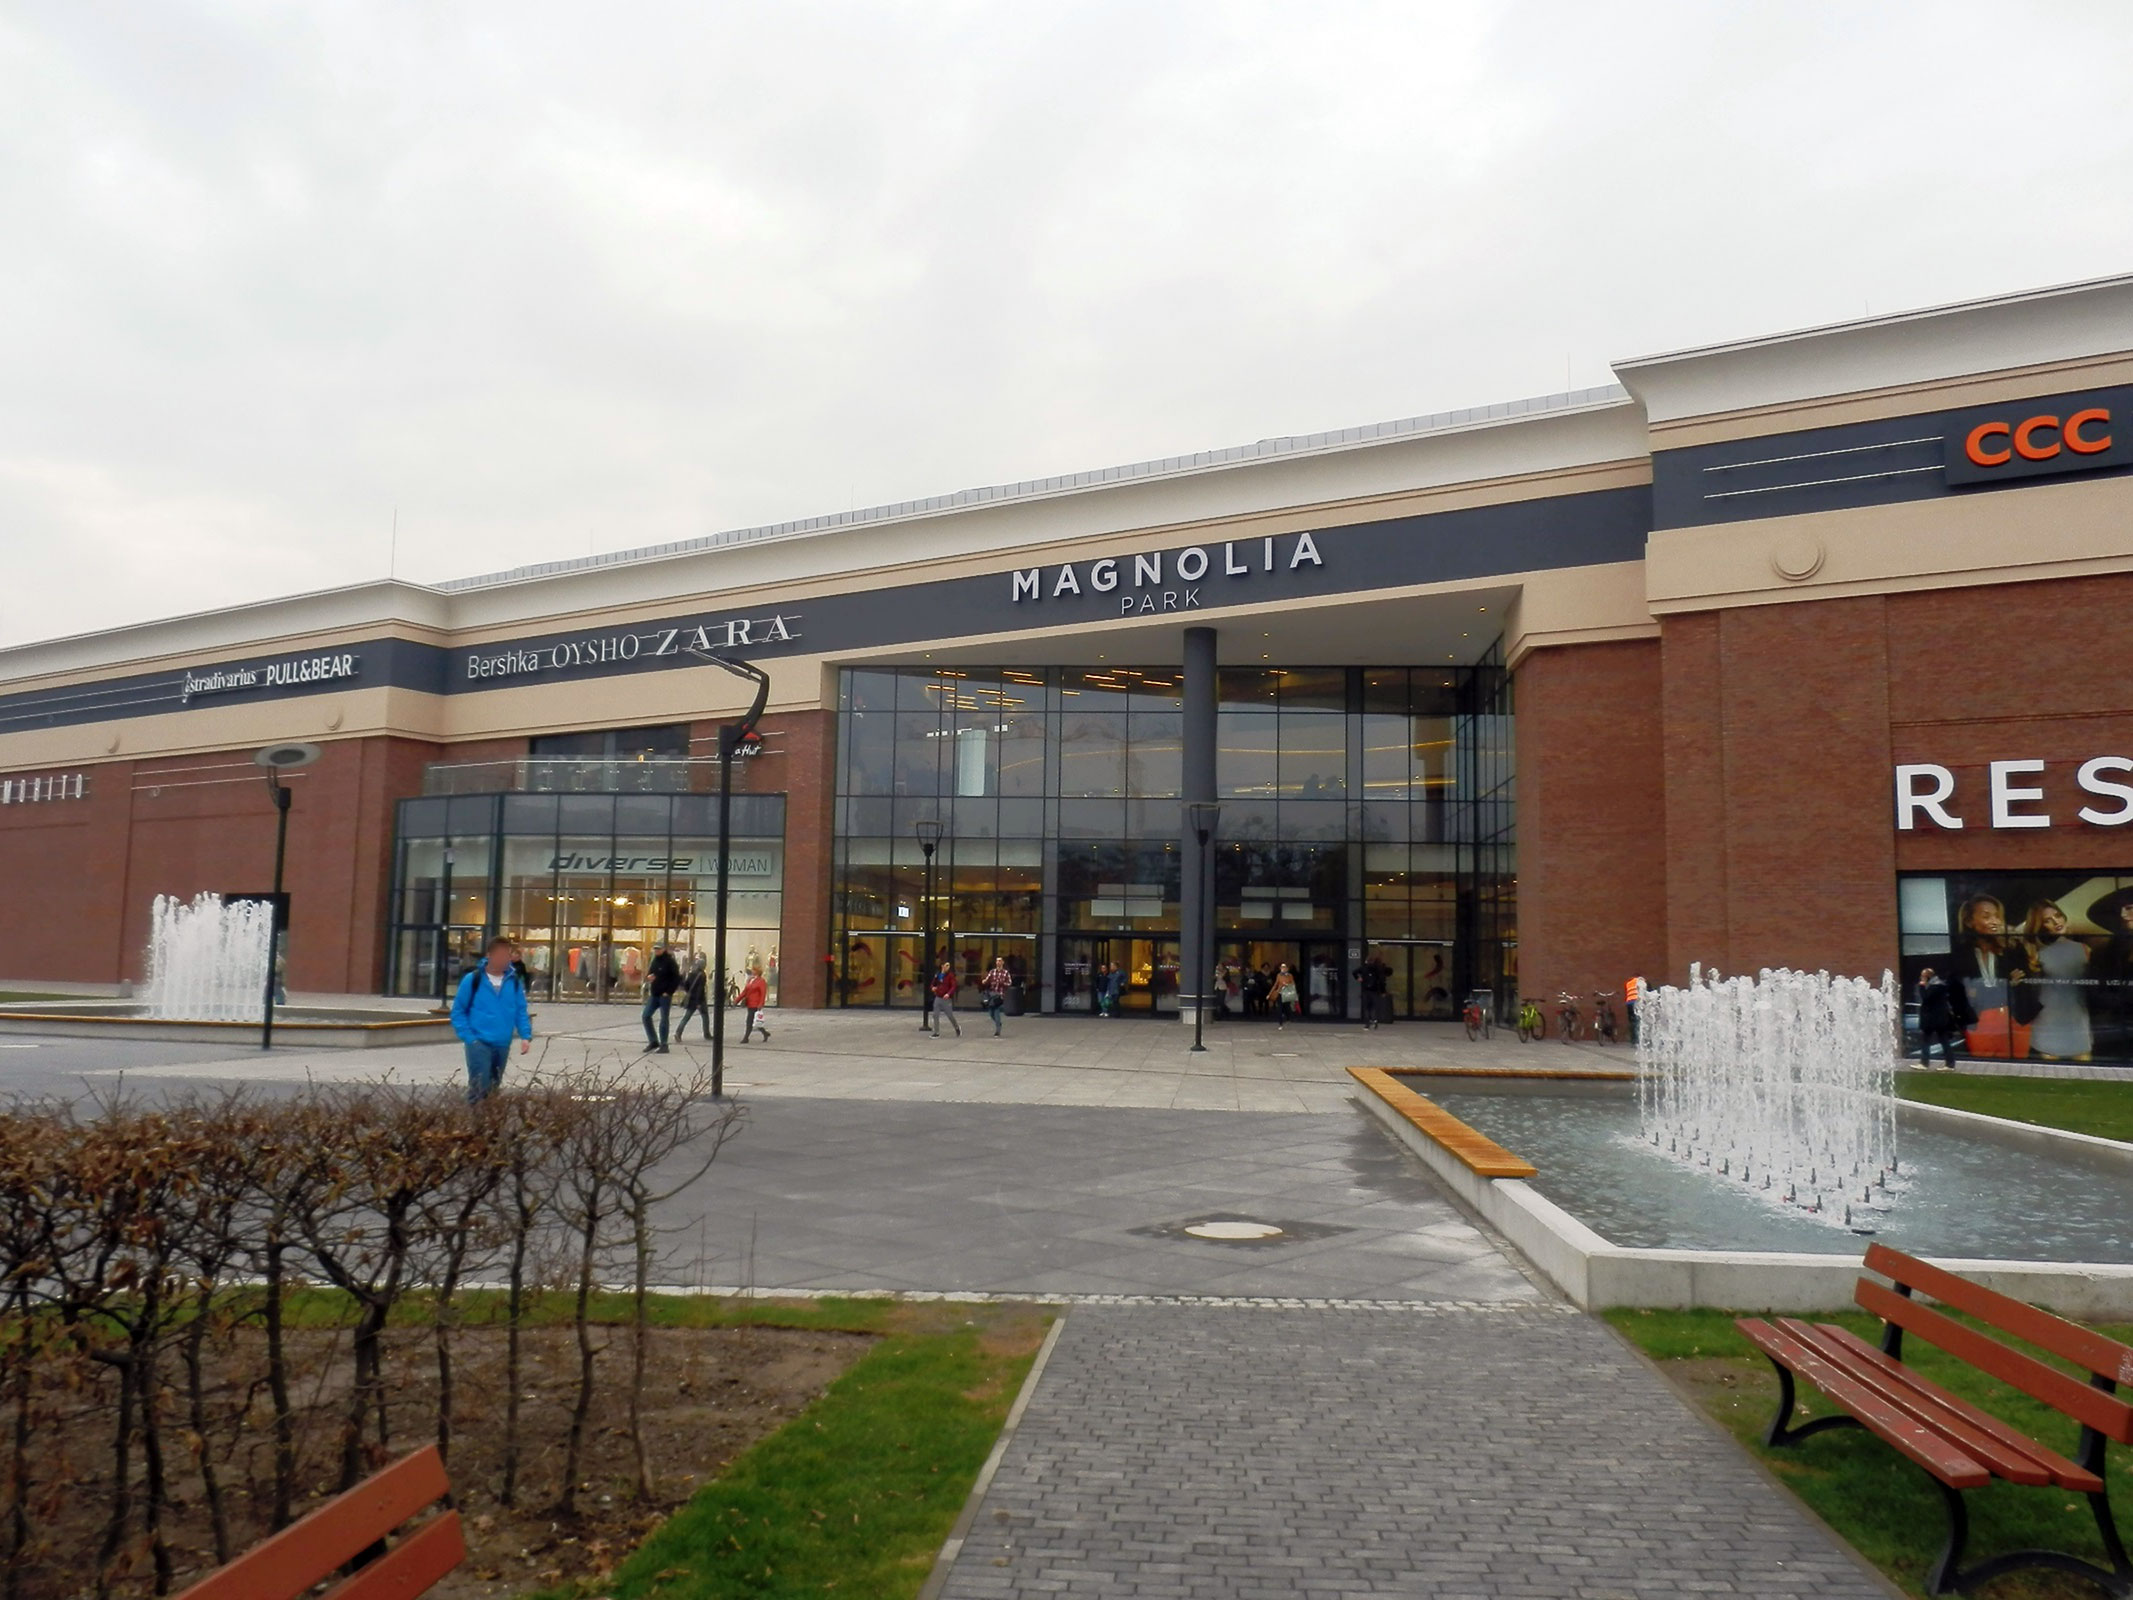 Magnolia Shopping Centre